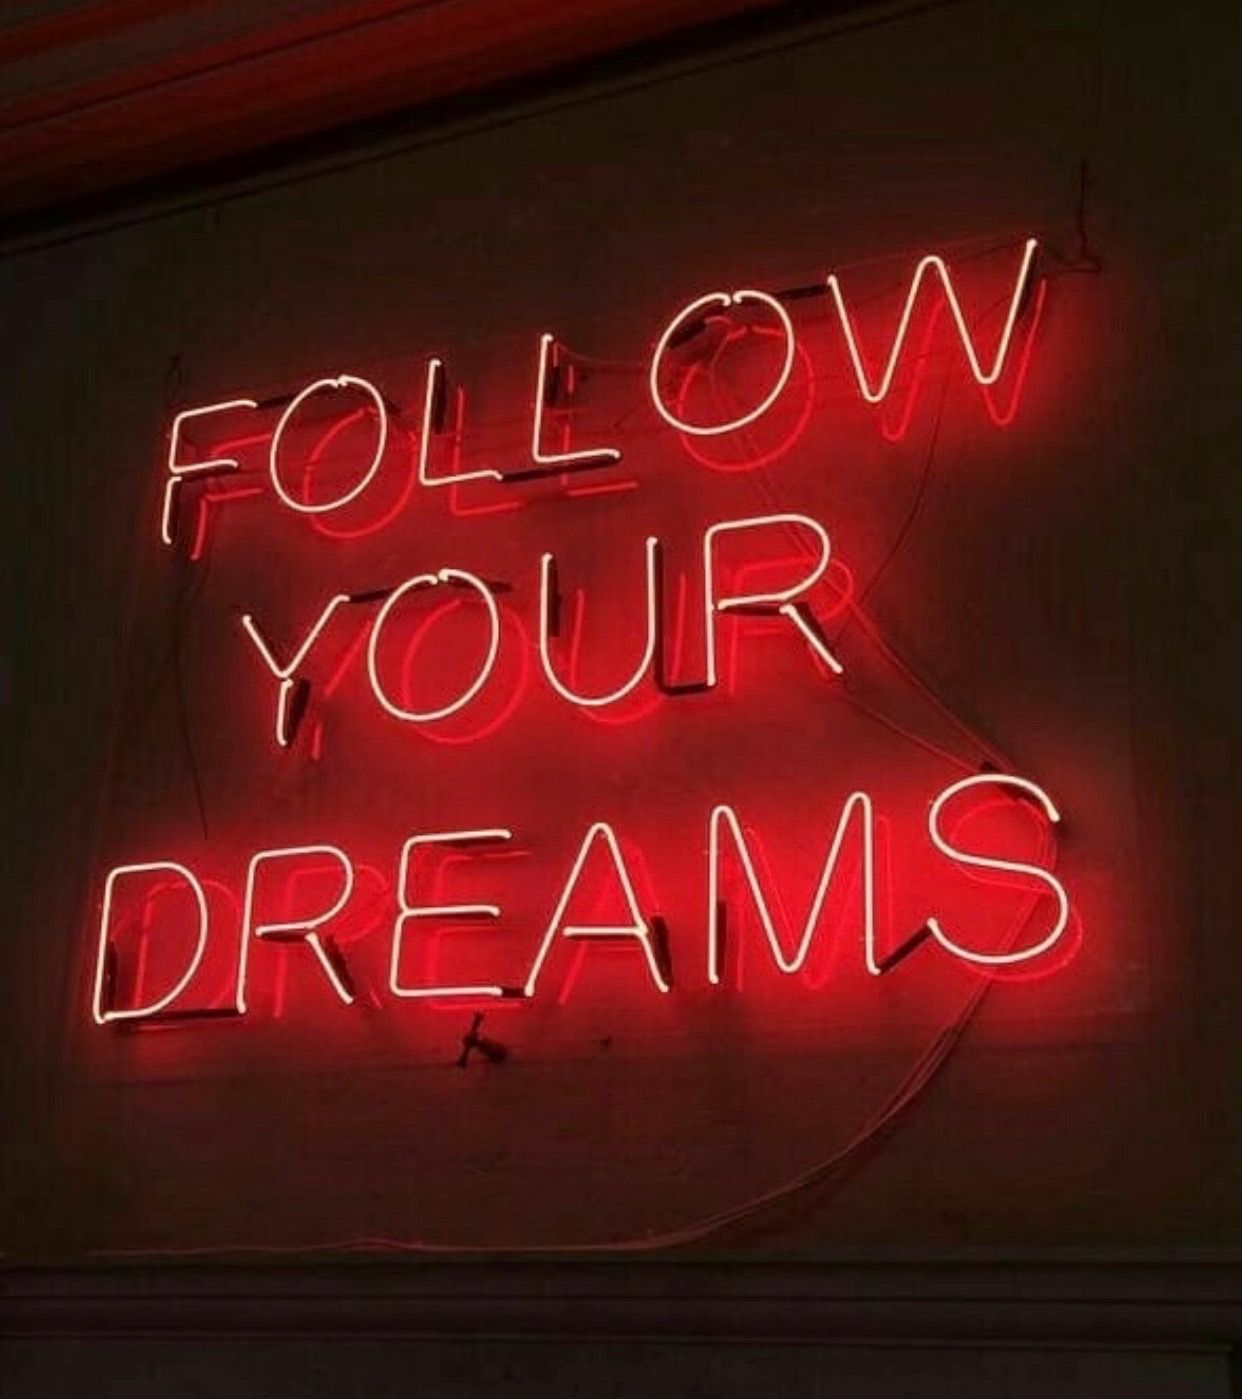 Pin By Lef On Neon Red Aesthetic Rainbow Aesthetic Neon Signs